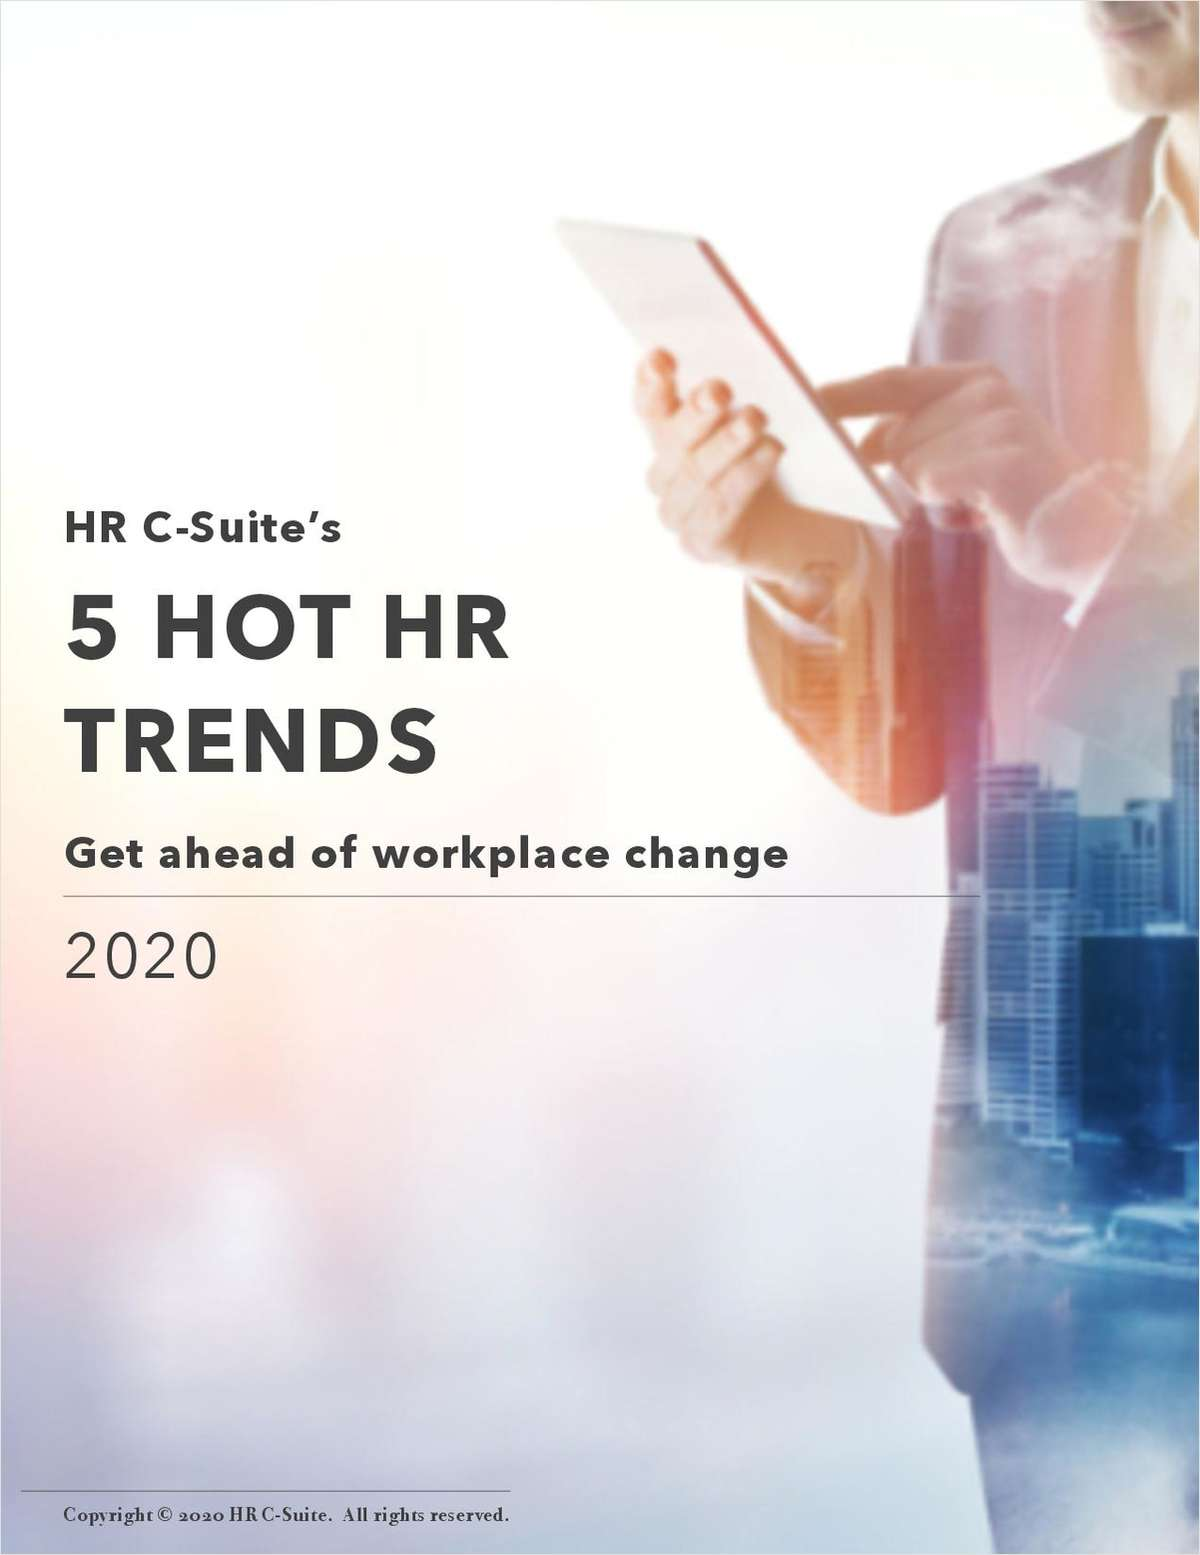 Hot HR Trends for 2020